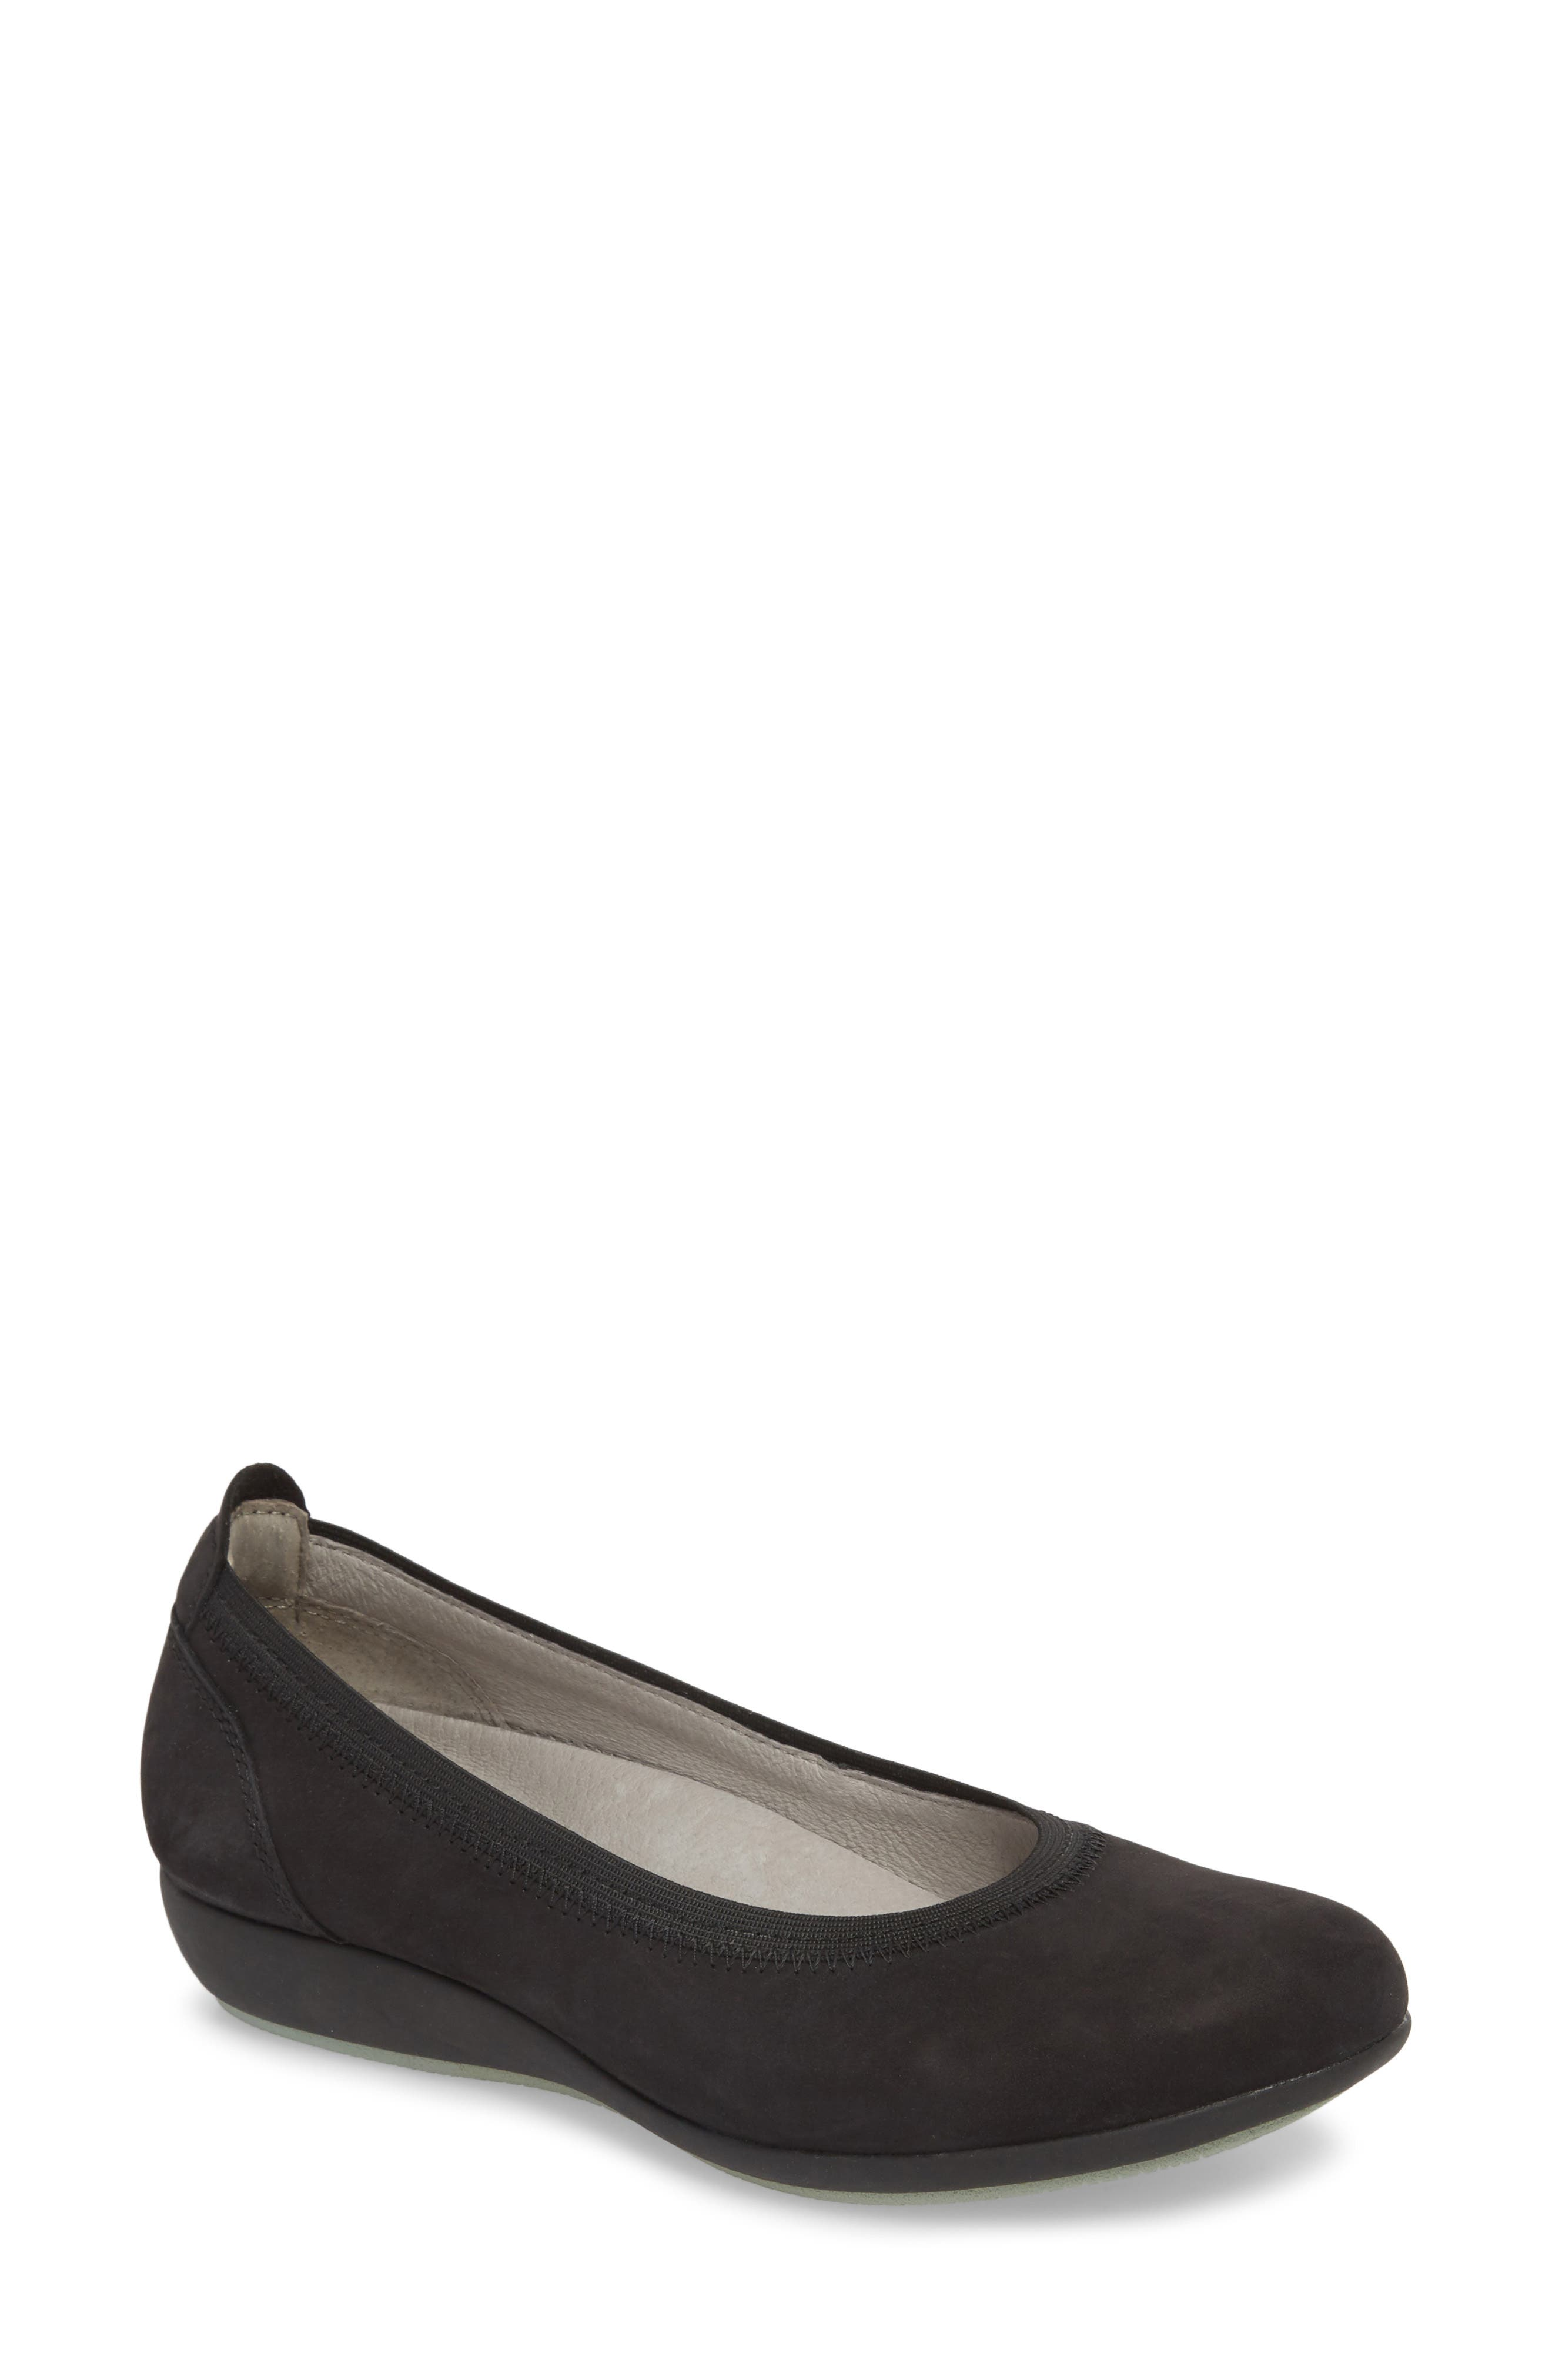 DANSKO Kristen Ballet Flat, Main, color, BLACK MILLED NUBUCK